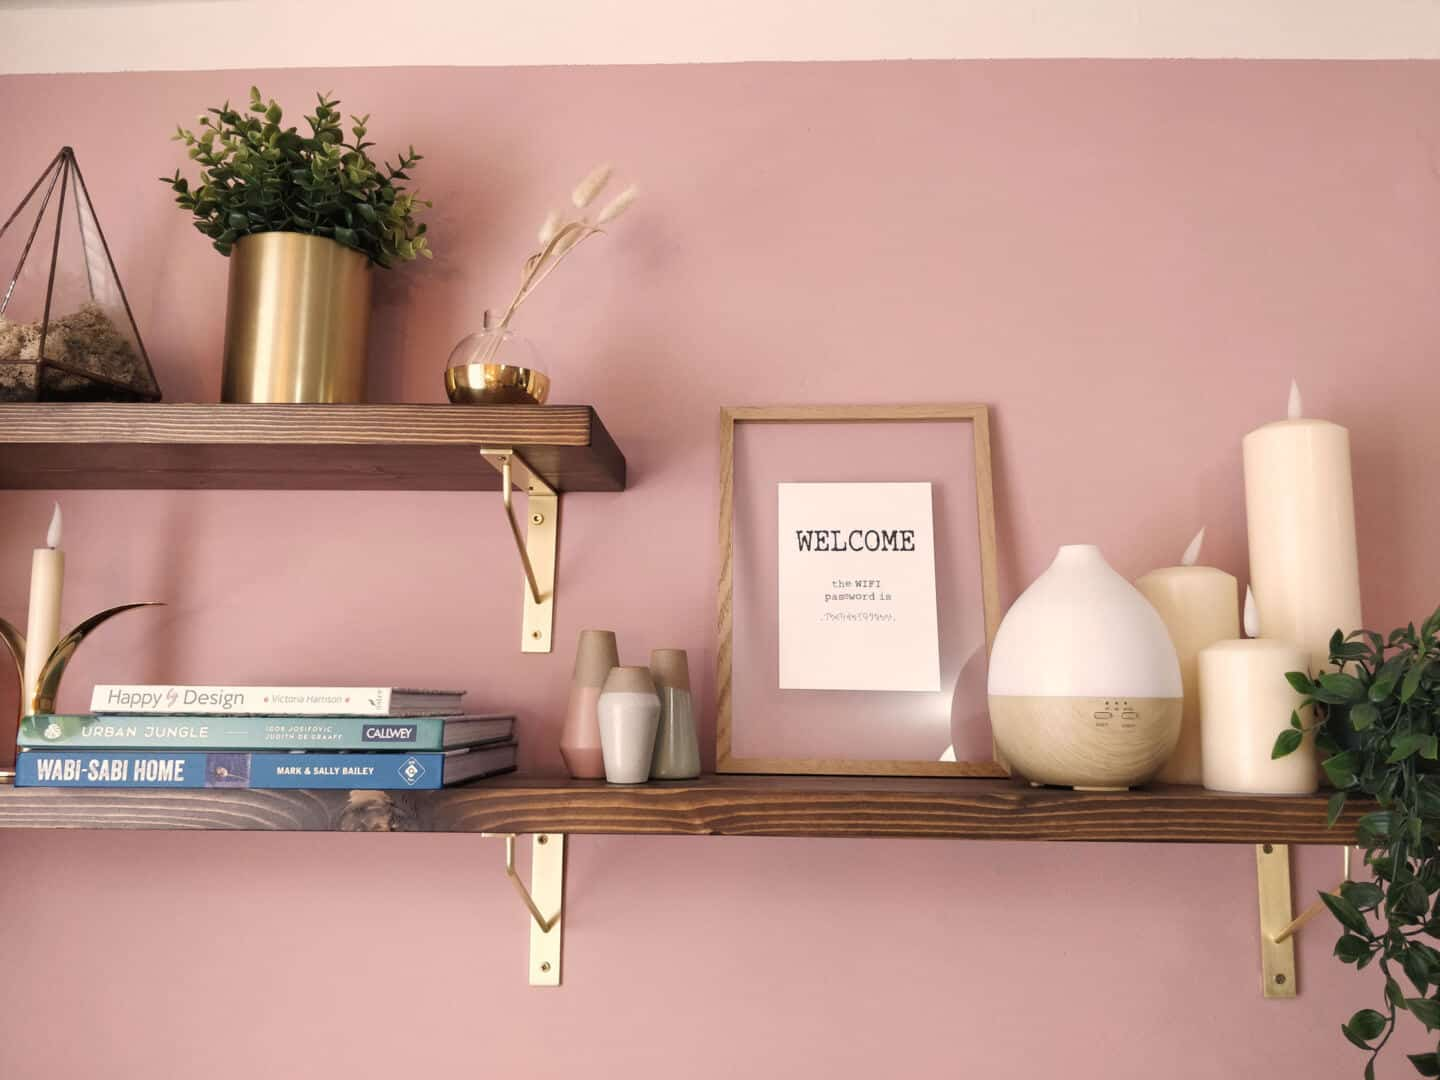 A shelf full of plants, candles, books and interior accessories